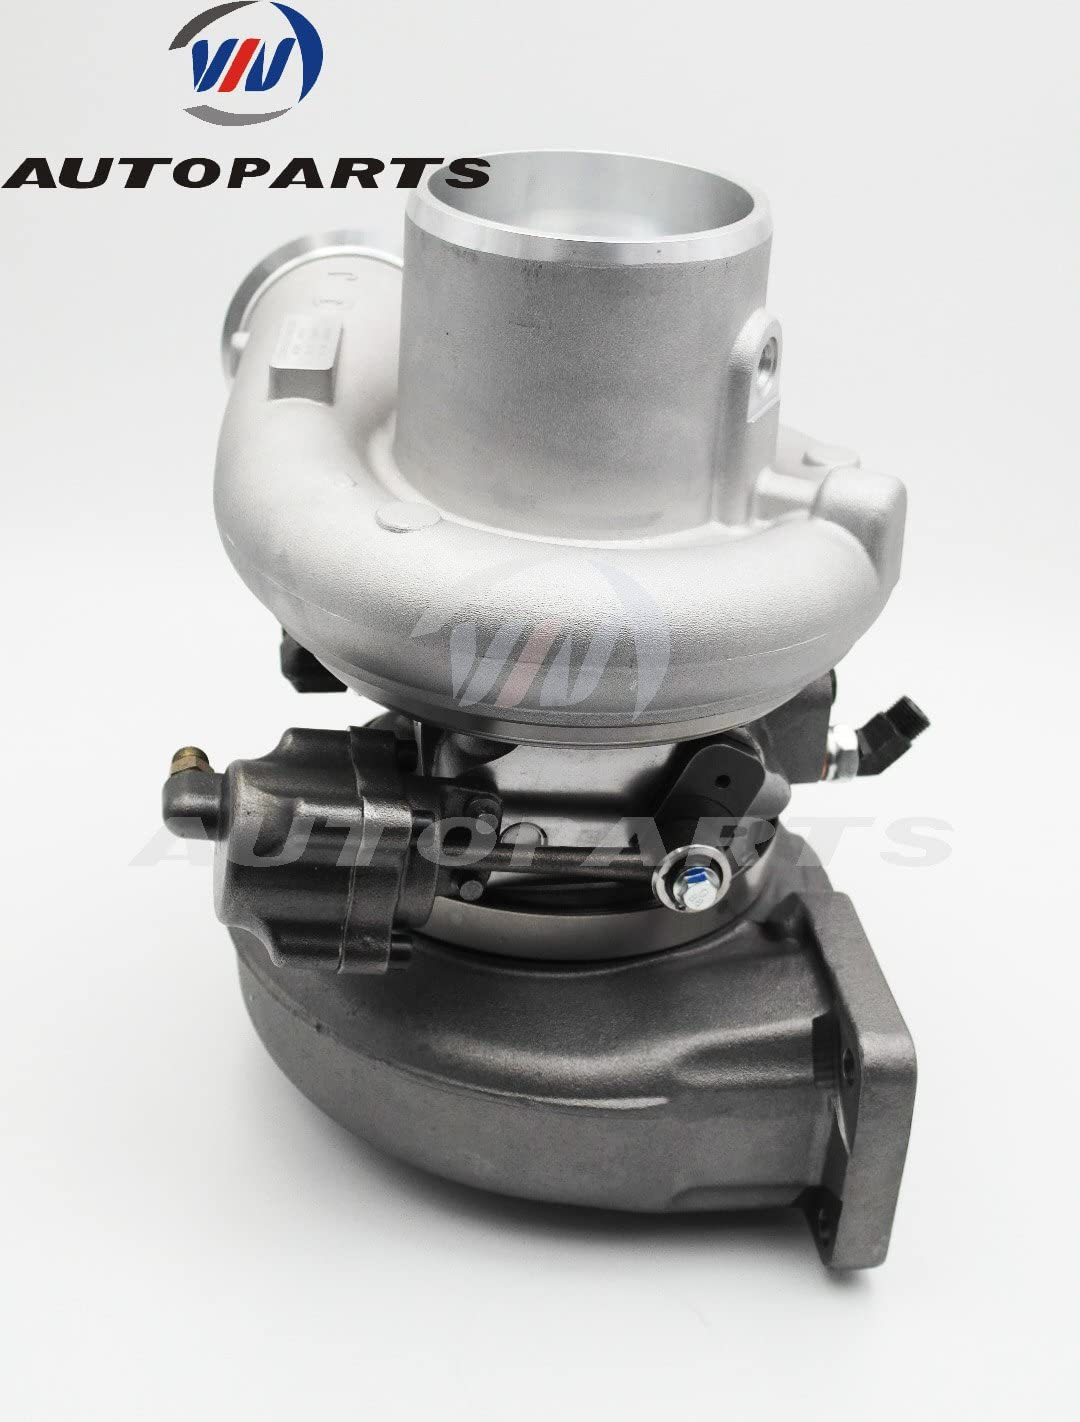 MFS4 Engine Turbocharger 4045753 for Cummins Truck with ISX Enforcer